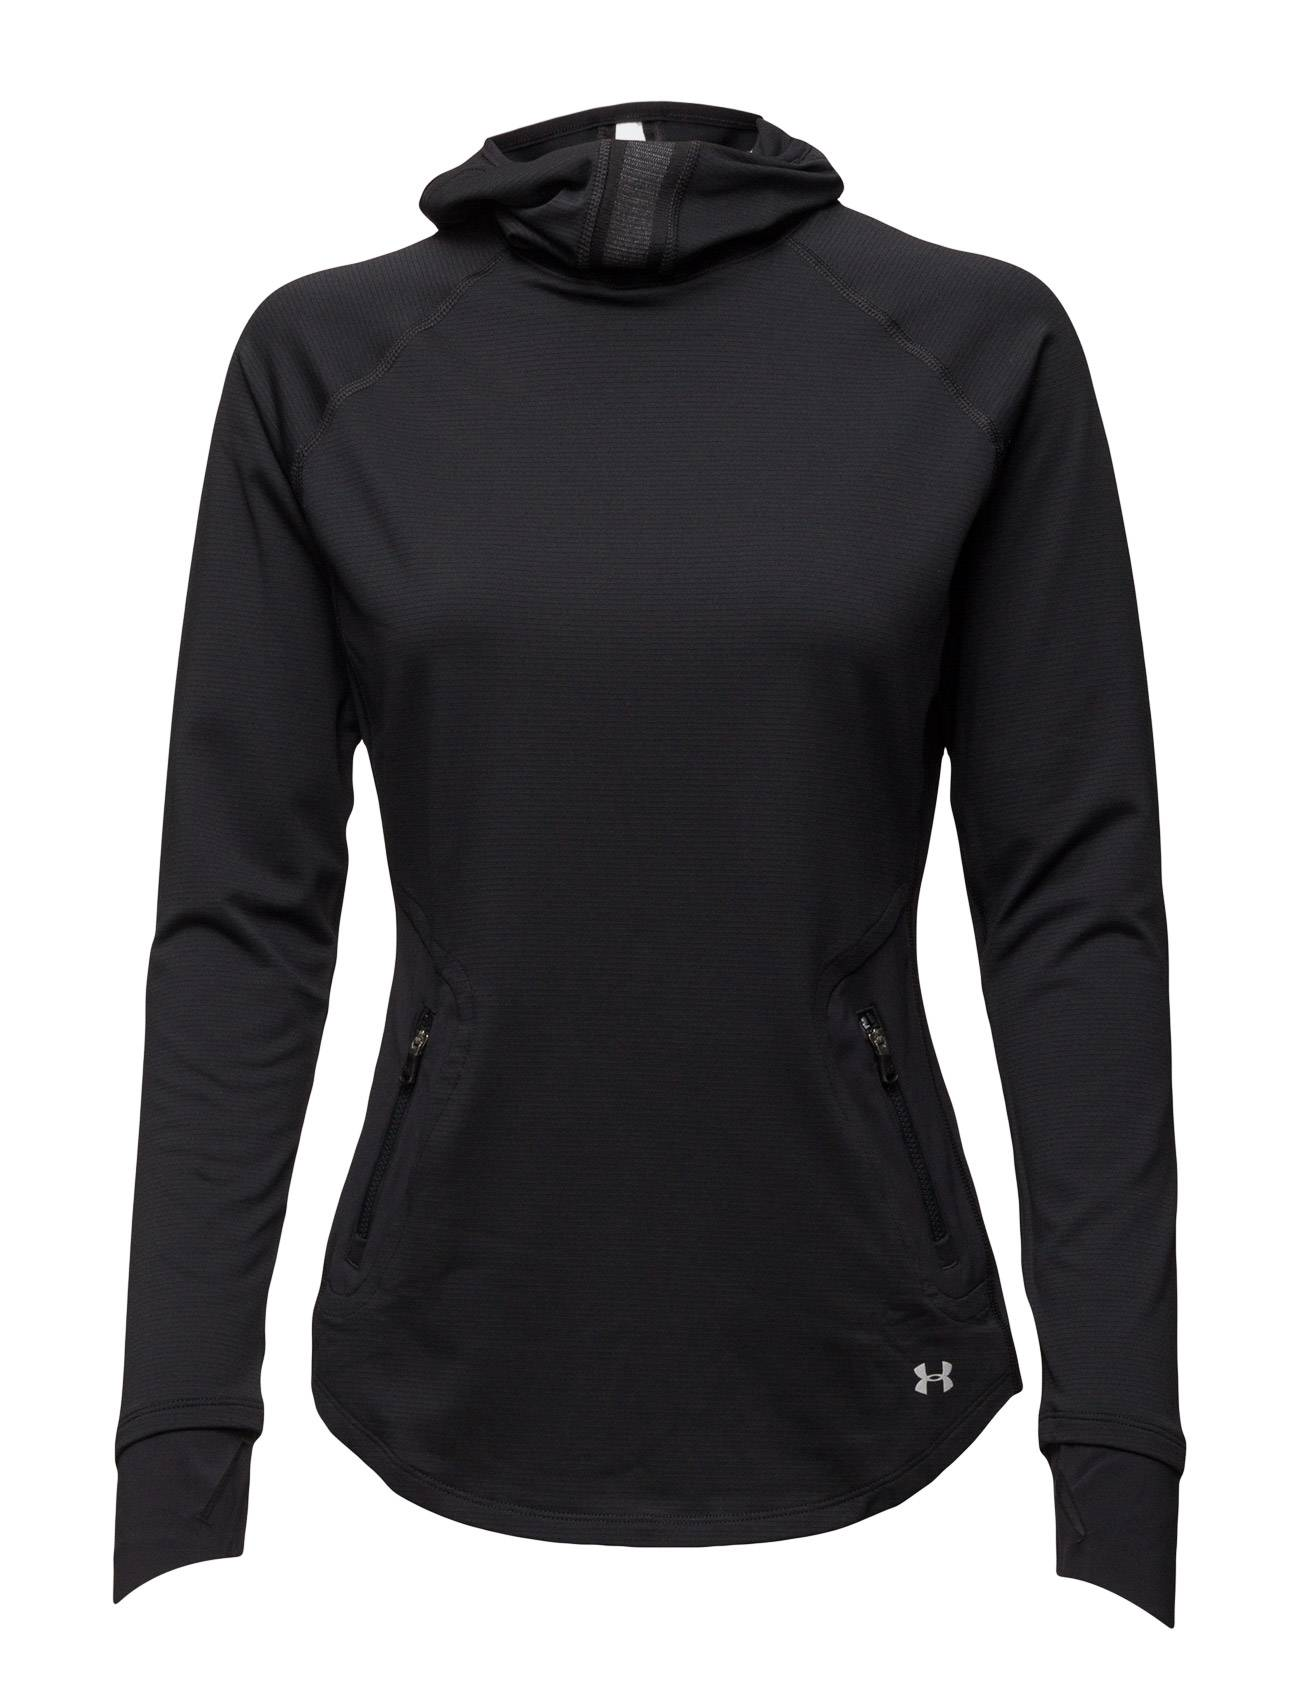 Under Armour No Breaks Balaclava Hoodie